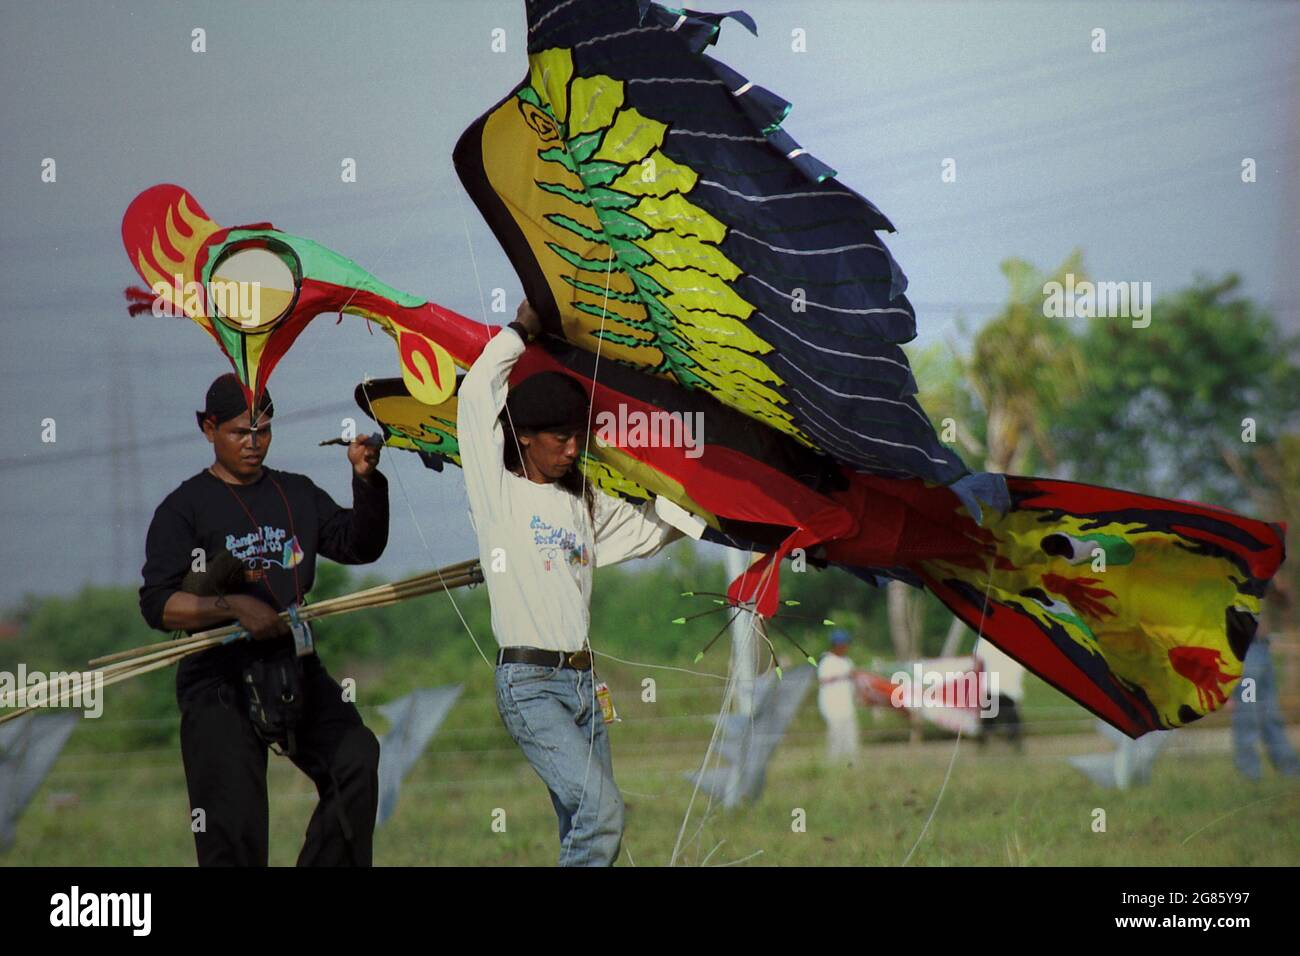 A participant transporting a giant kite that was designed to represent a Garuda during the 2004 Jakarta International Kite Festival that held on July 9-11 at Carnival Beach in Ancol Dreamland, North Jakarta, Jakarta, Indonesia. Stock Photo